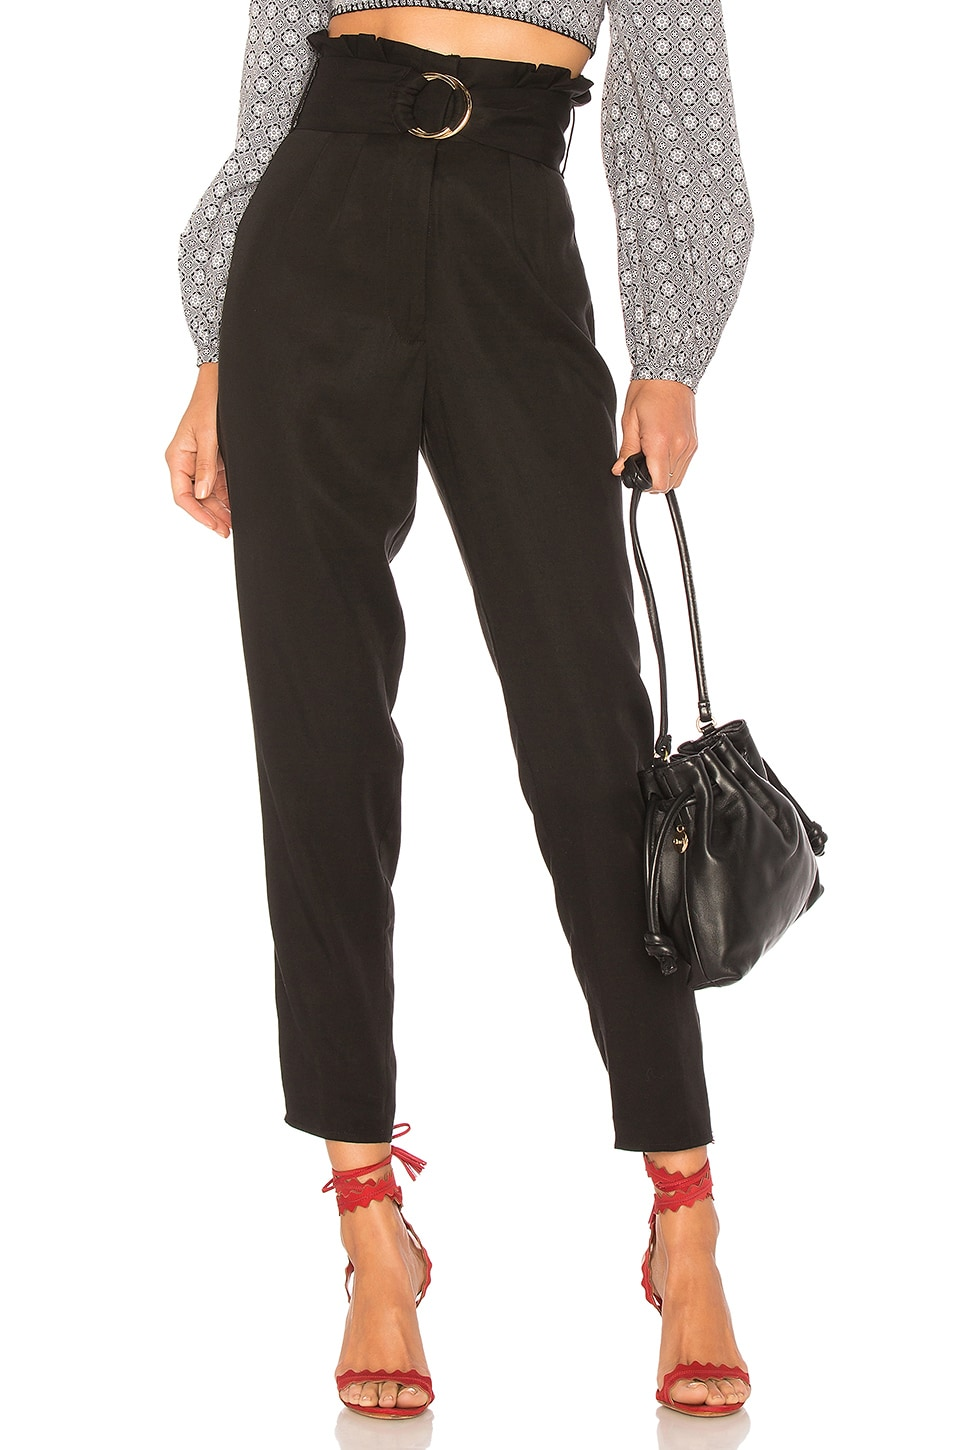 Tularosa Greyson Trousers in Black